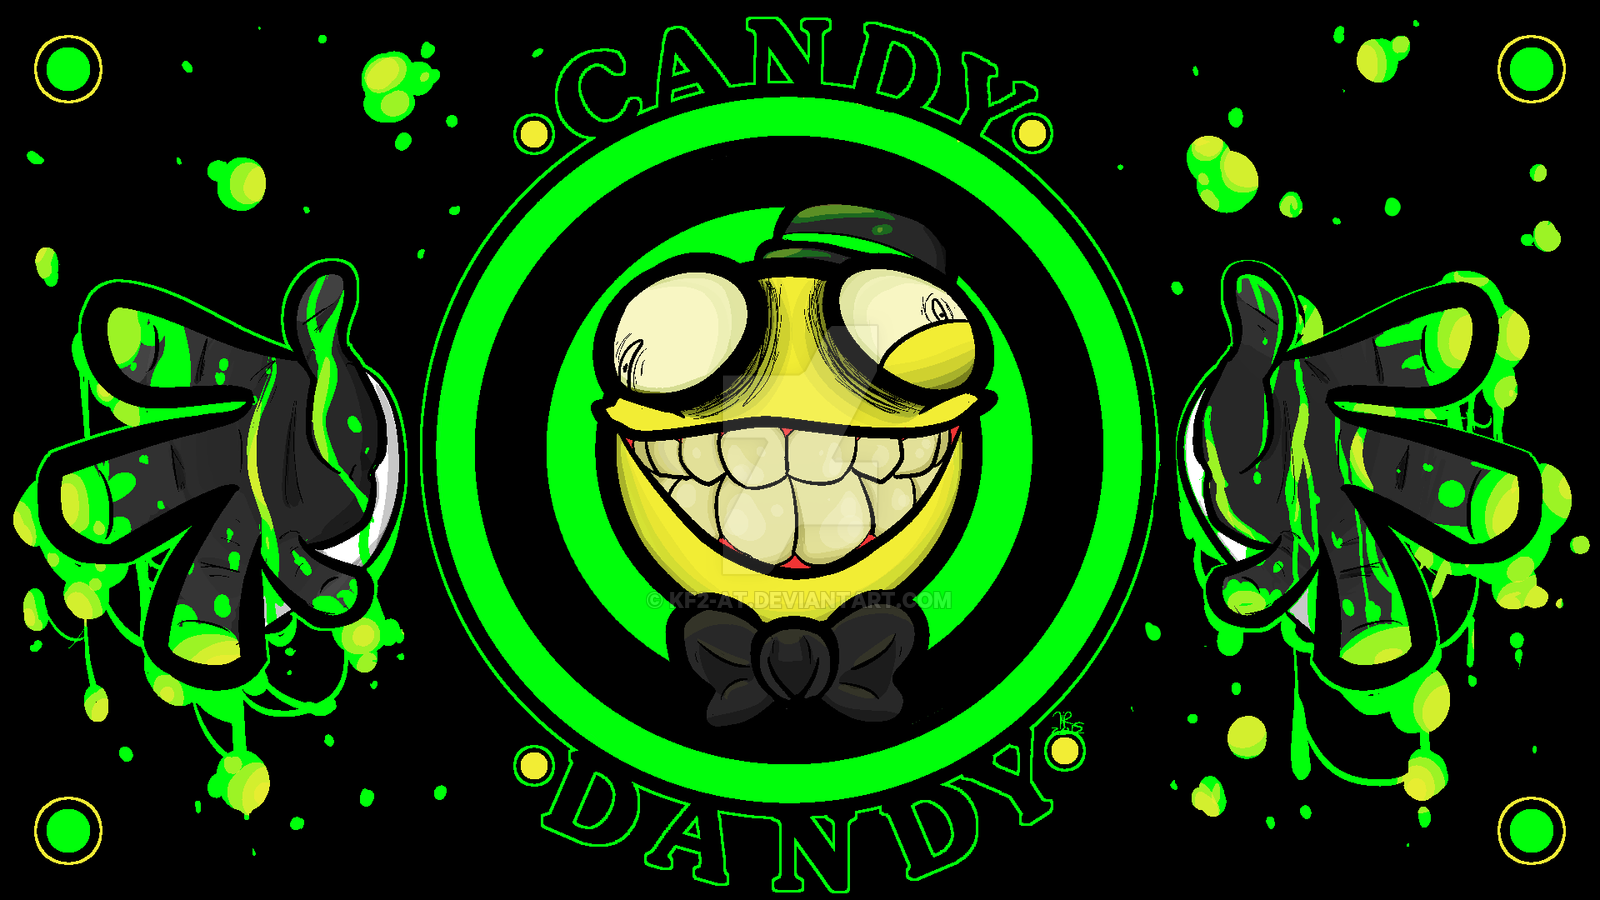 Candyman Wallpaper Thing by KF2 AT 1600x900